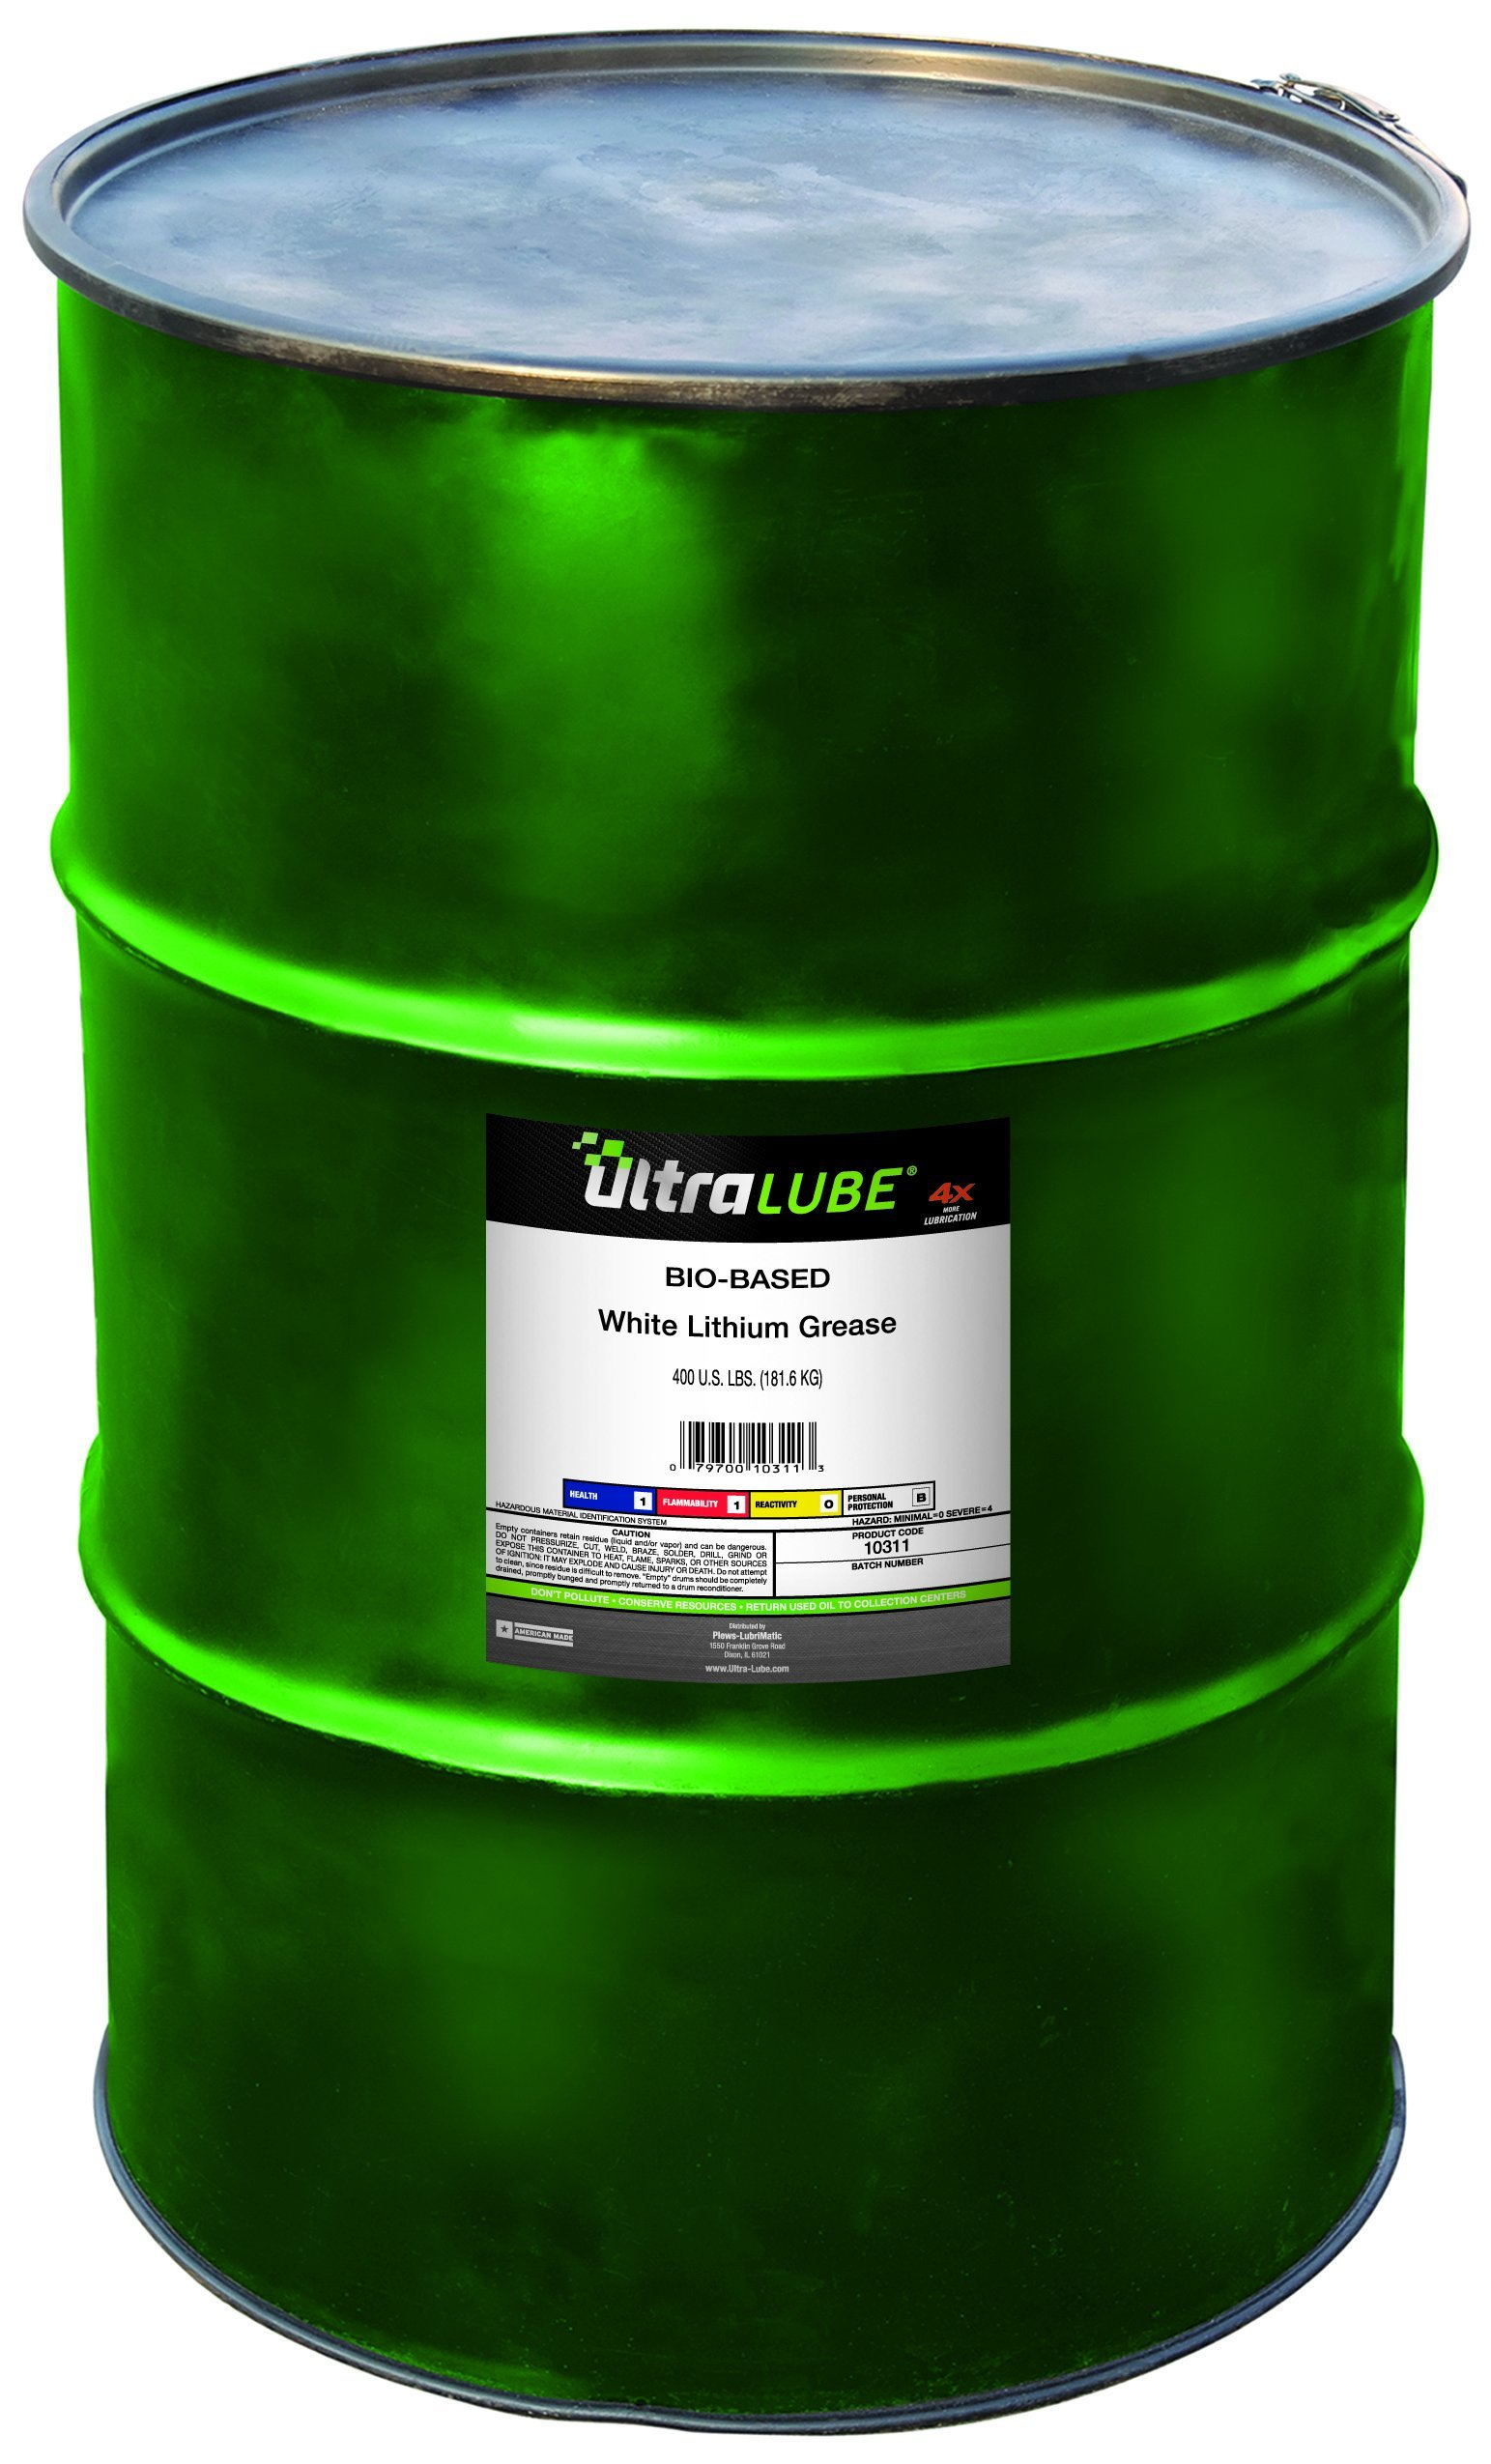 Ultra Lube 10311 White Lithium Biobased Grease- 400 Lbs Metal Drum by LubriMatic